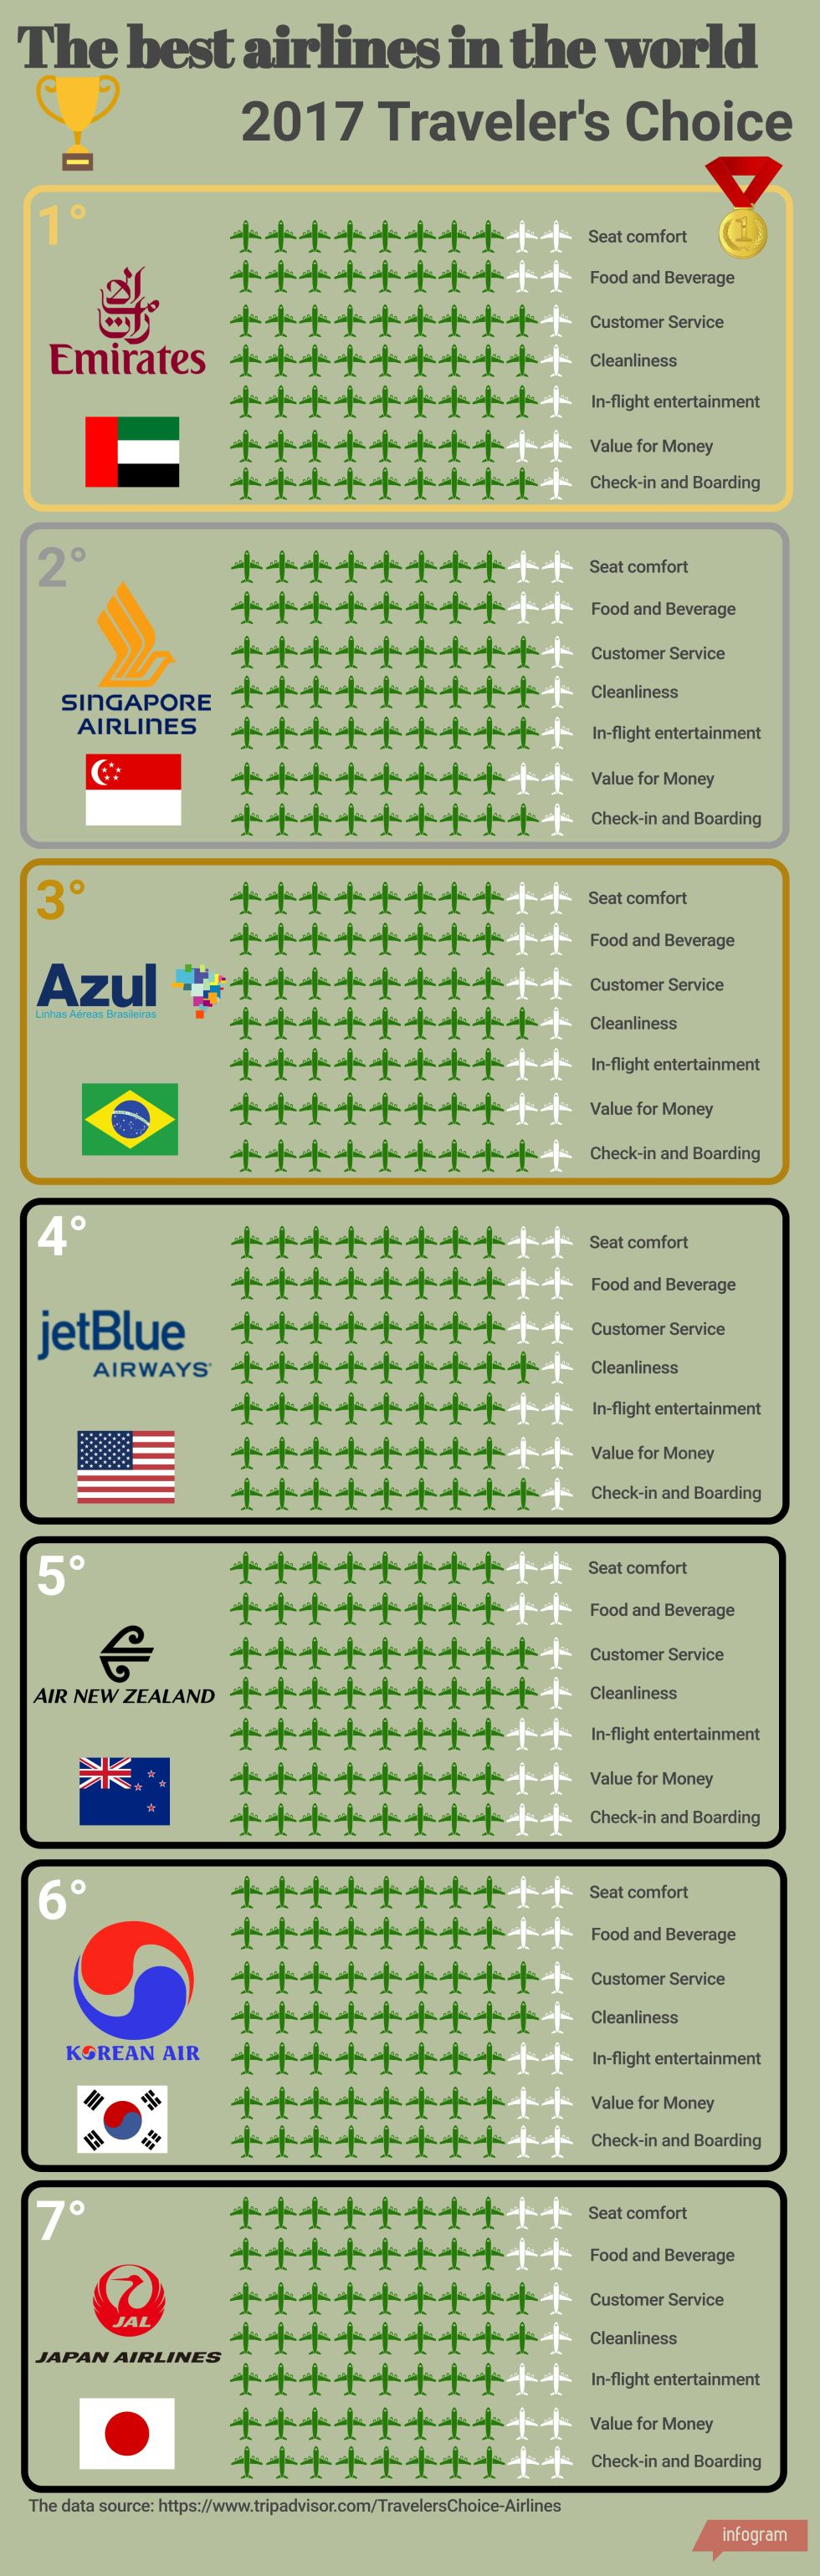 infografics_the_best_airlines